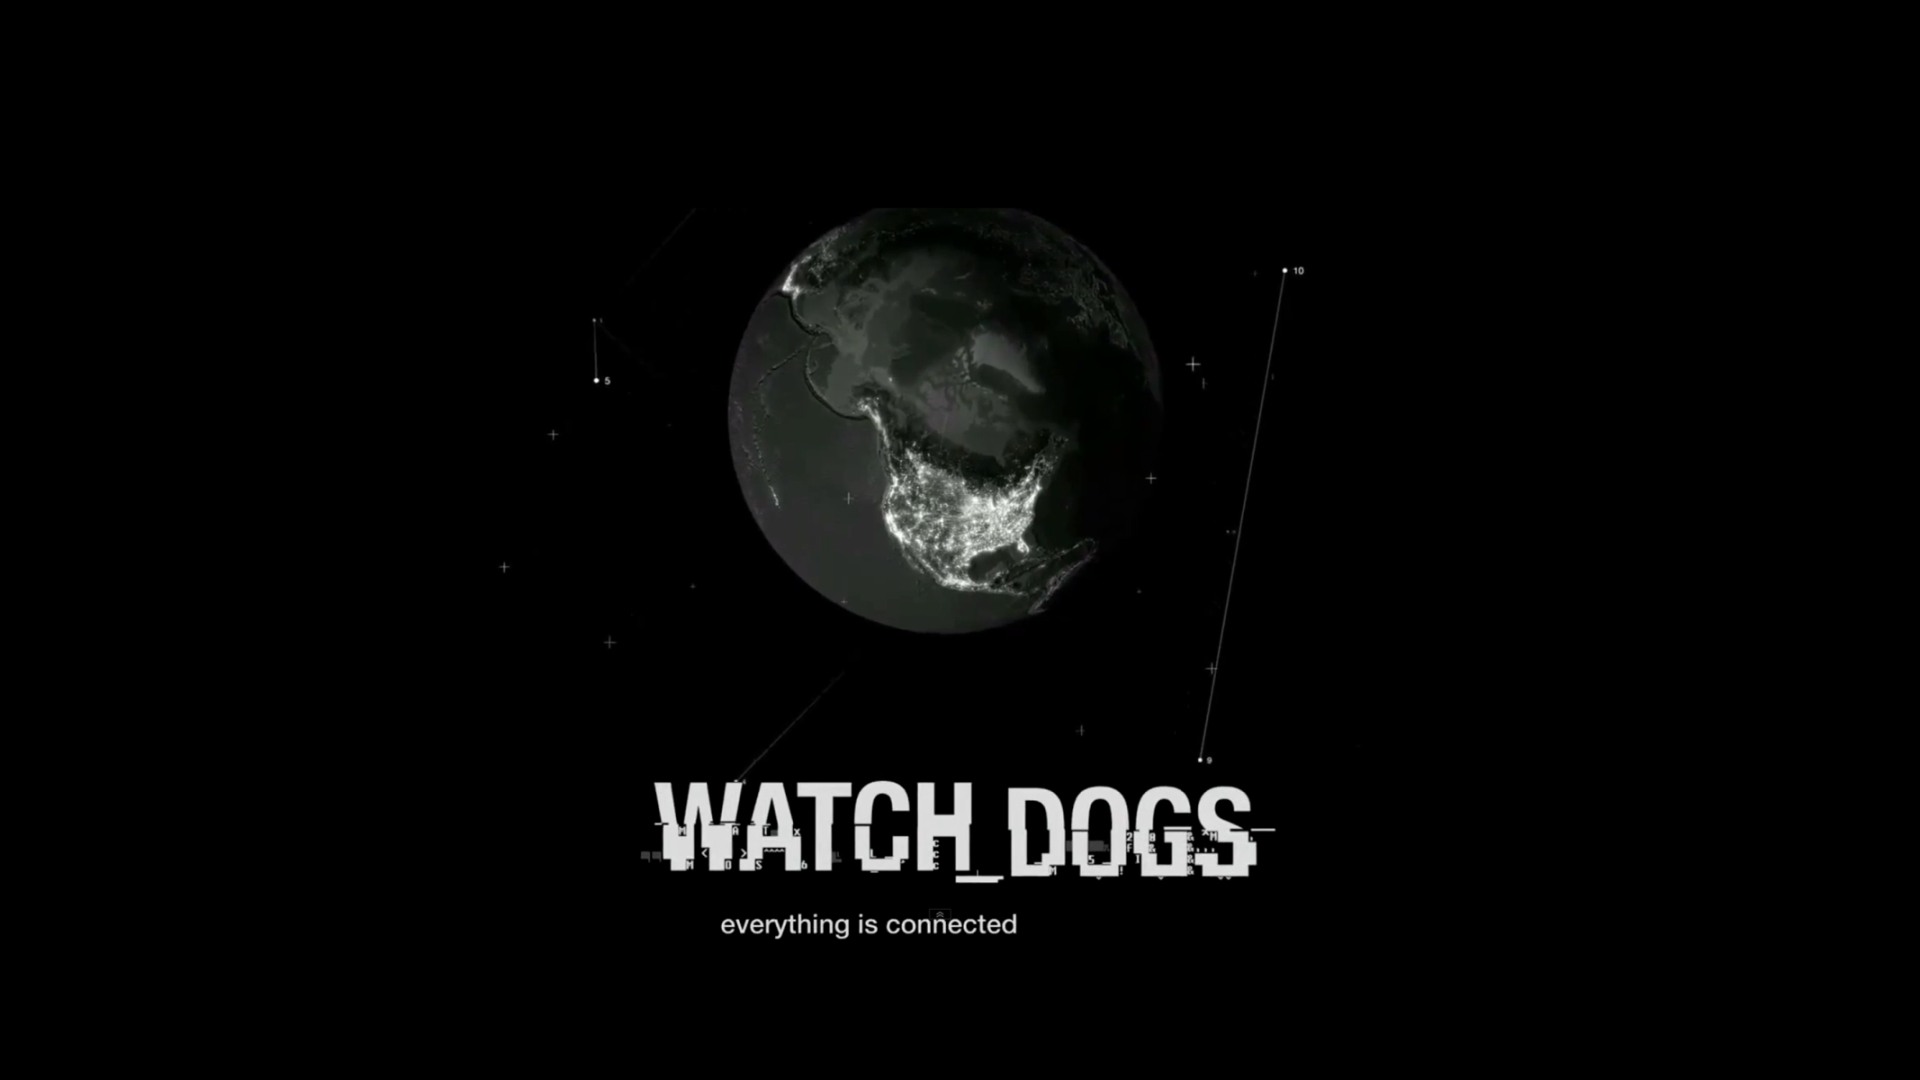 Free Download Download Watch Dogs Font Black Background Hd 1920x1080 For Your Desktop Mobile Tablet Explore 73 Watch Dogs 2 Video Game Wallpapers Watch Dogs 2 Video Game Wallpapers